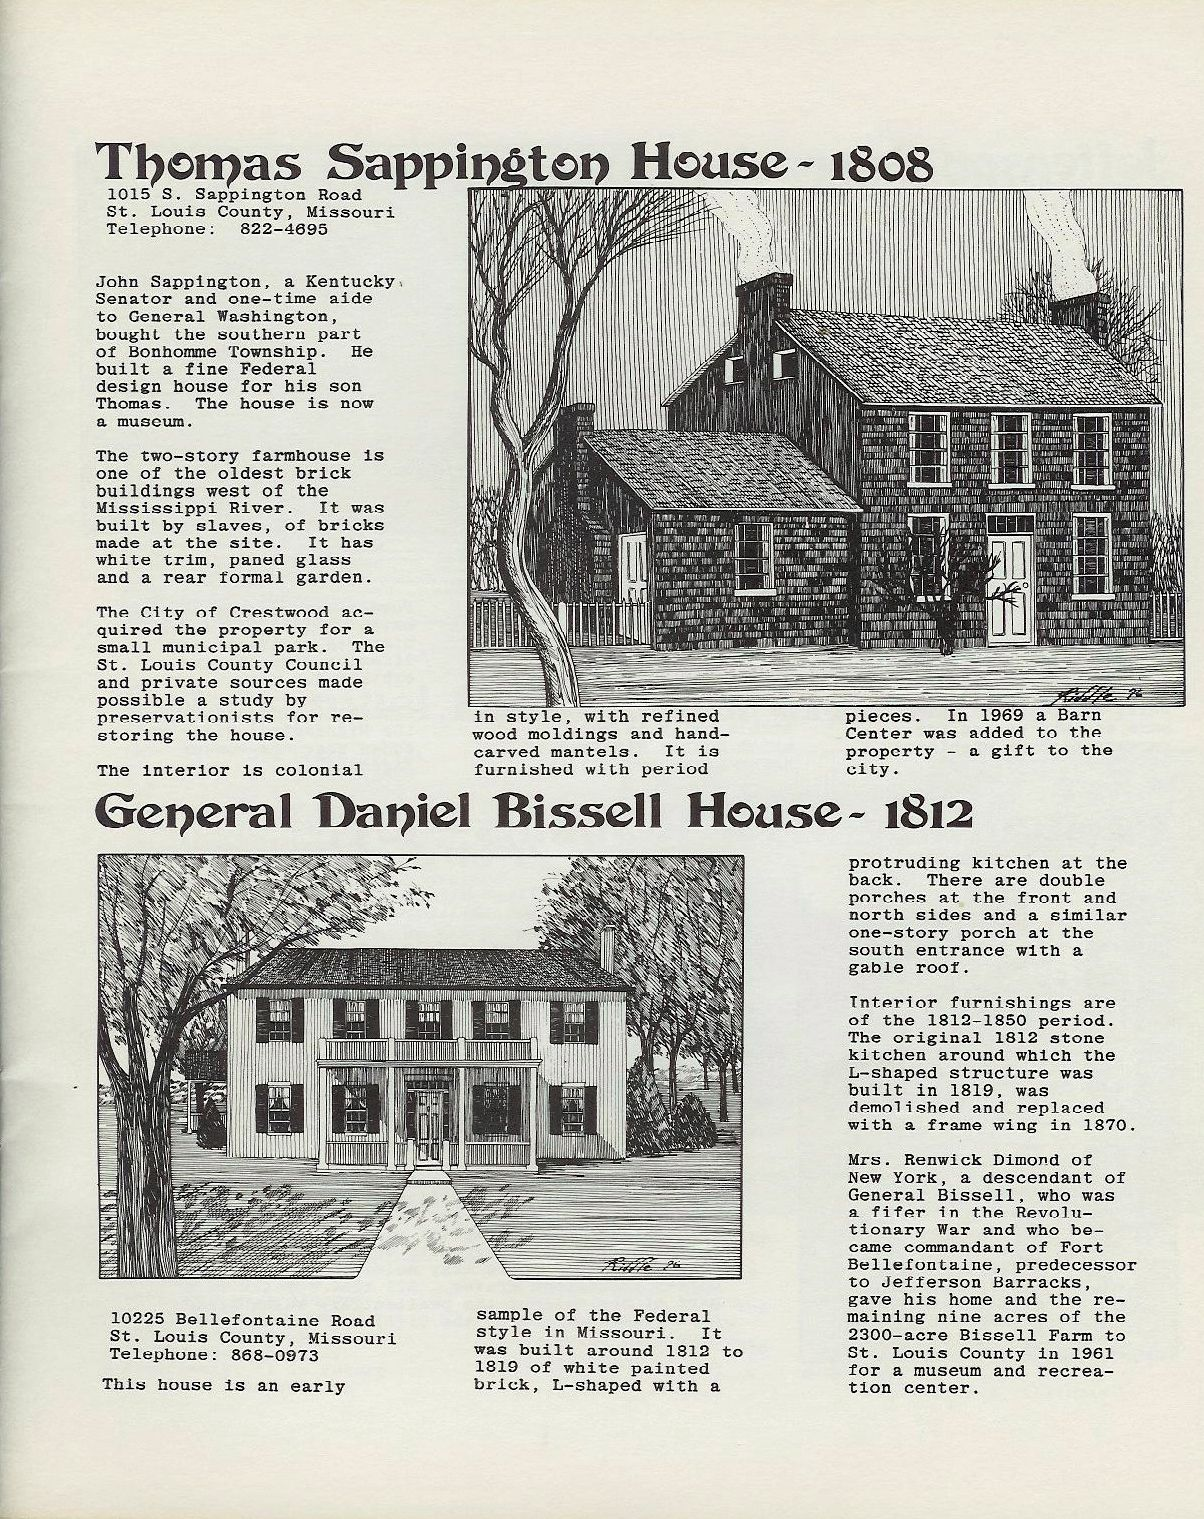 Thomas Sappinton House 1808 General Daniel Bissell House 1812 St Louis County Son House Old Things